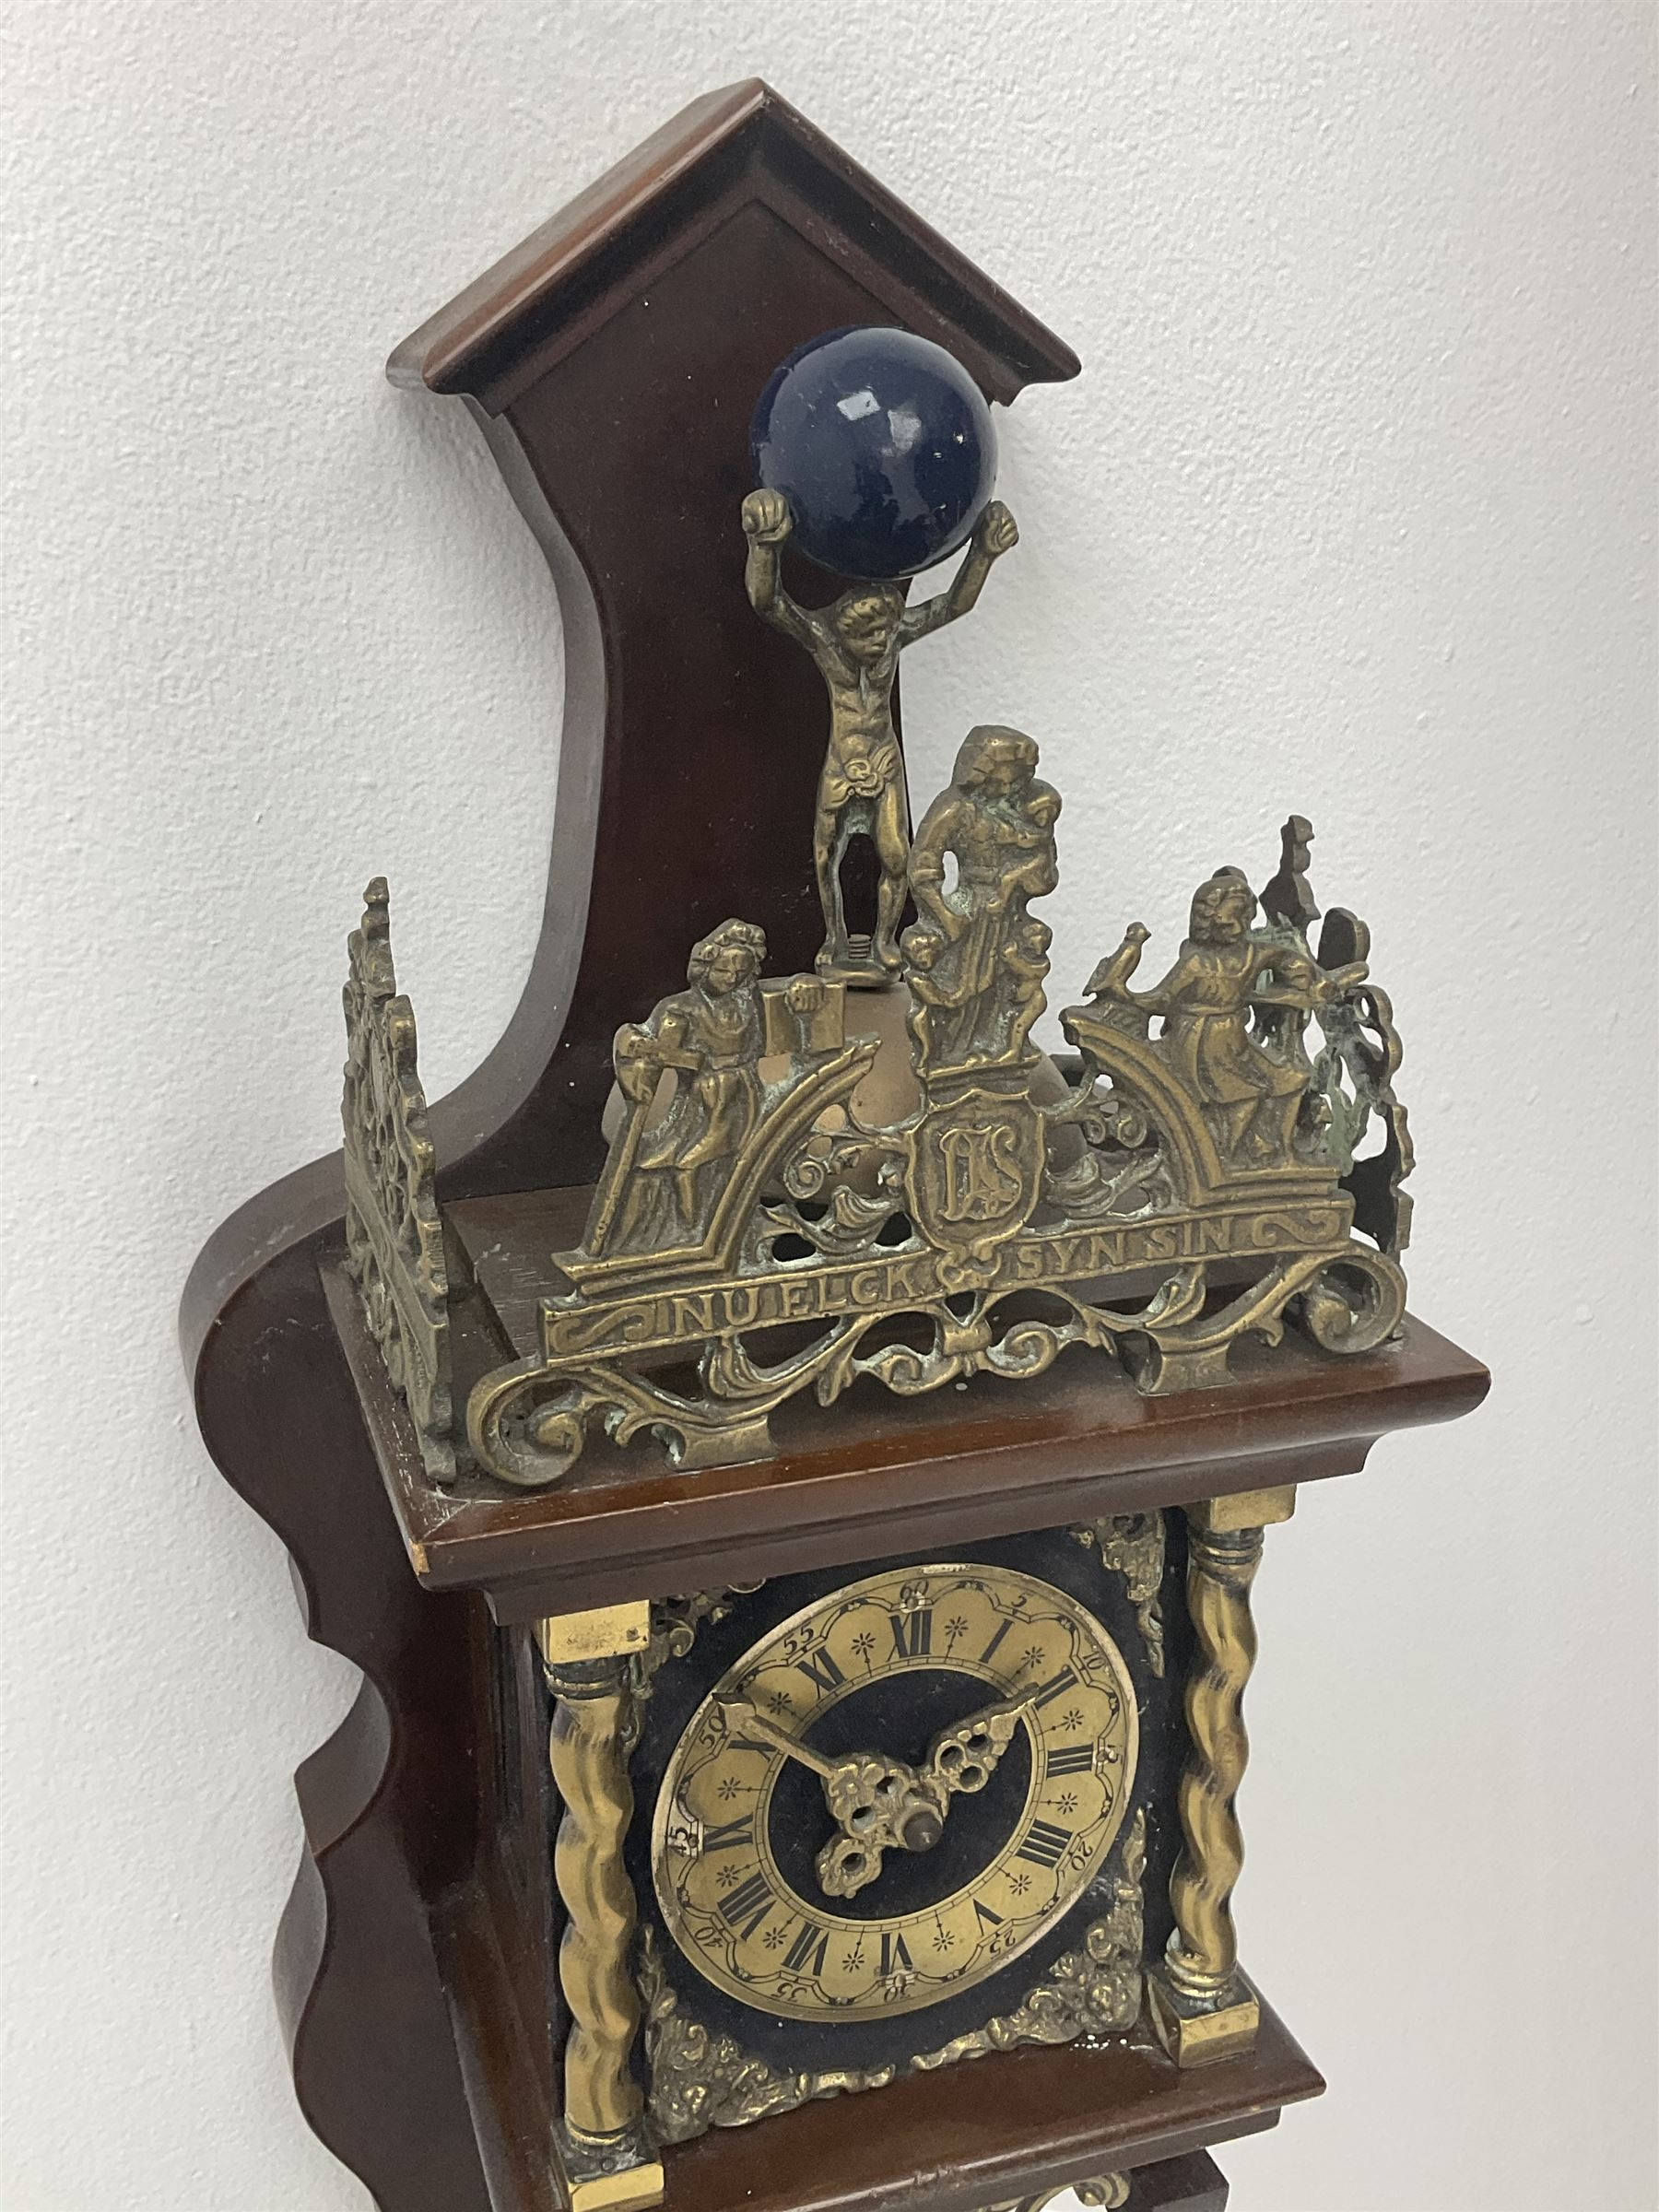 Late 20th century Dutch style figural wall clock in walnut case - Image 2 of 4